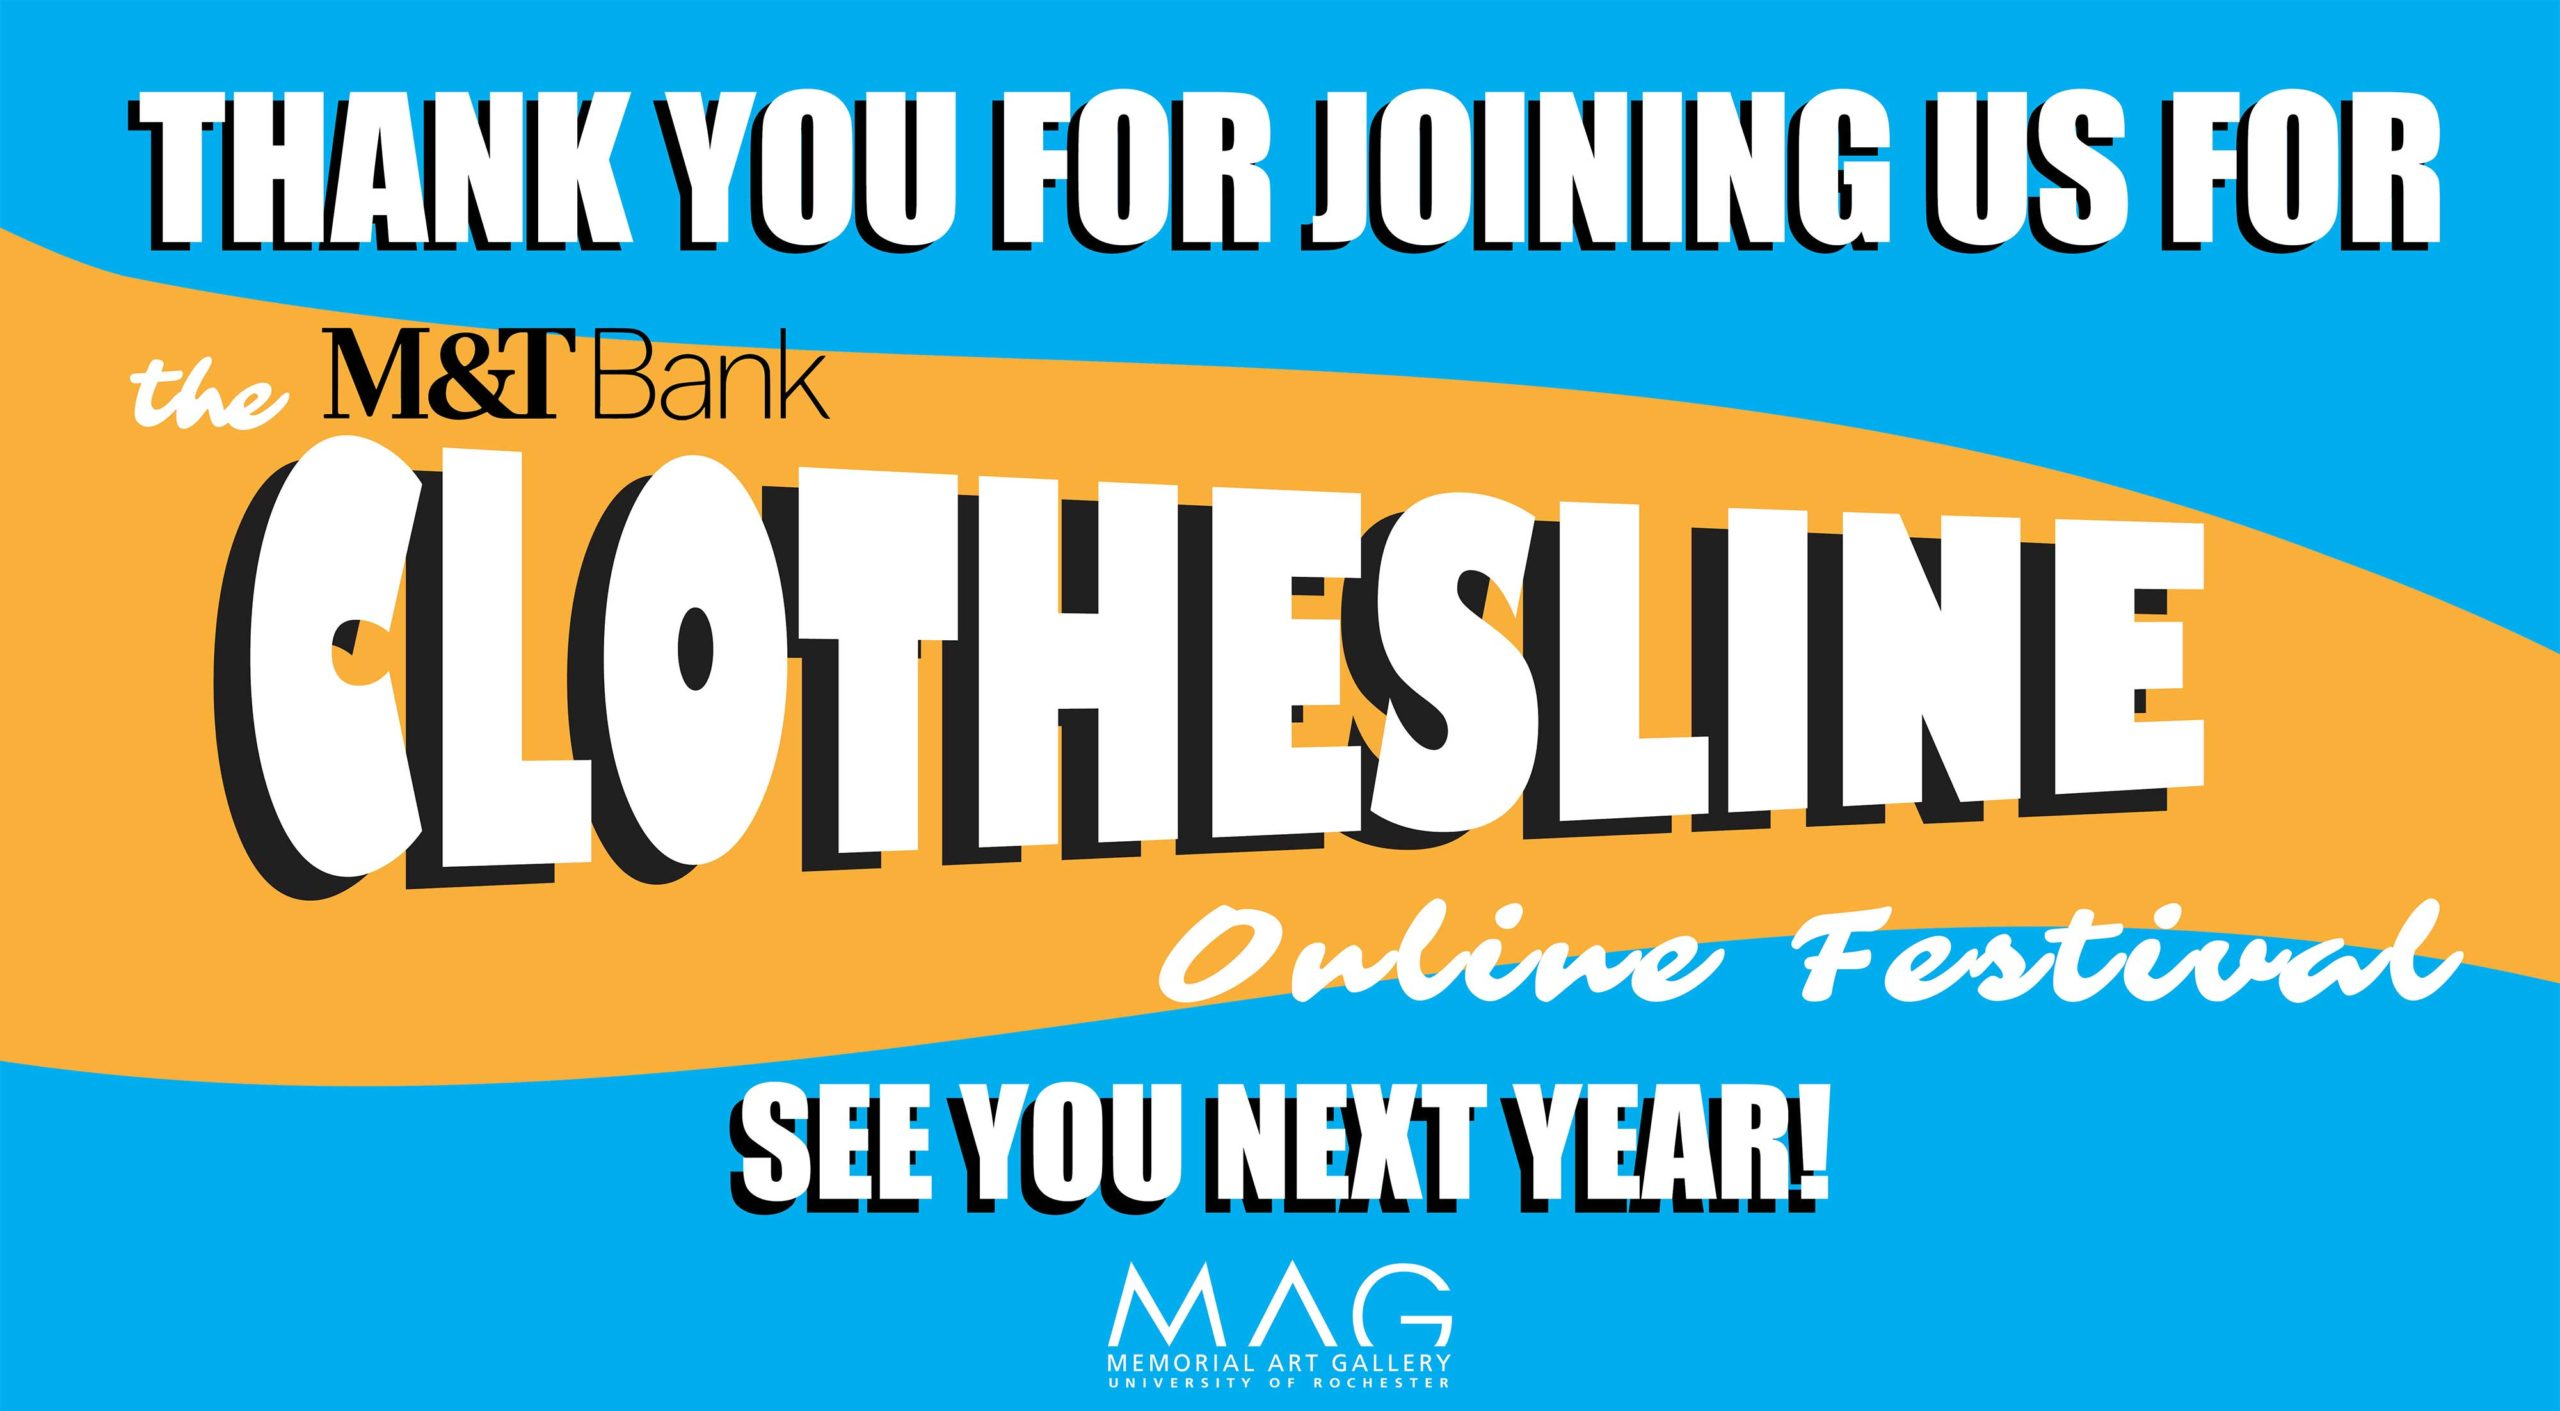 Thank you for joining us for the M&T Bank Clothesline Online Festival - See you next year!